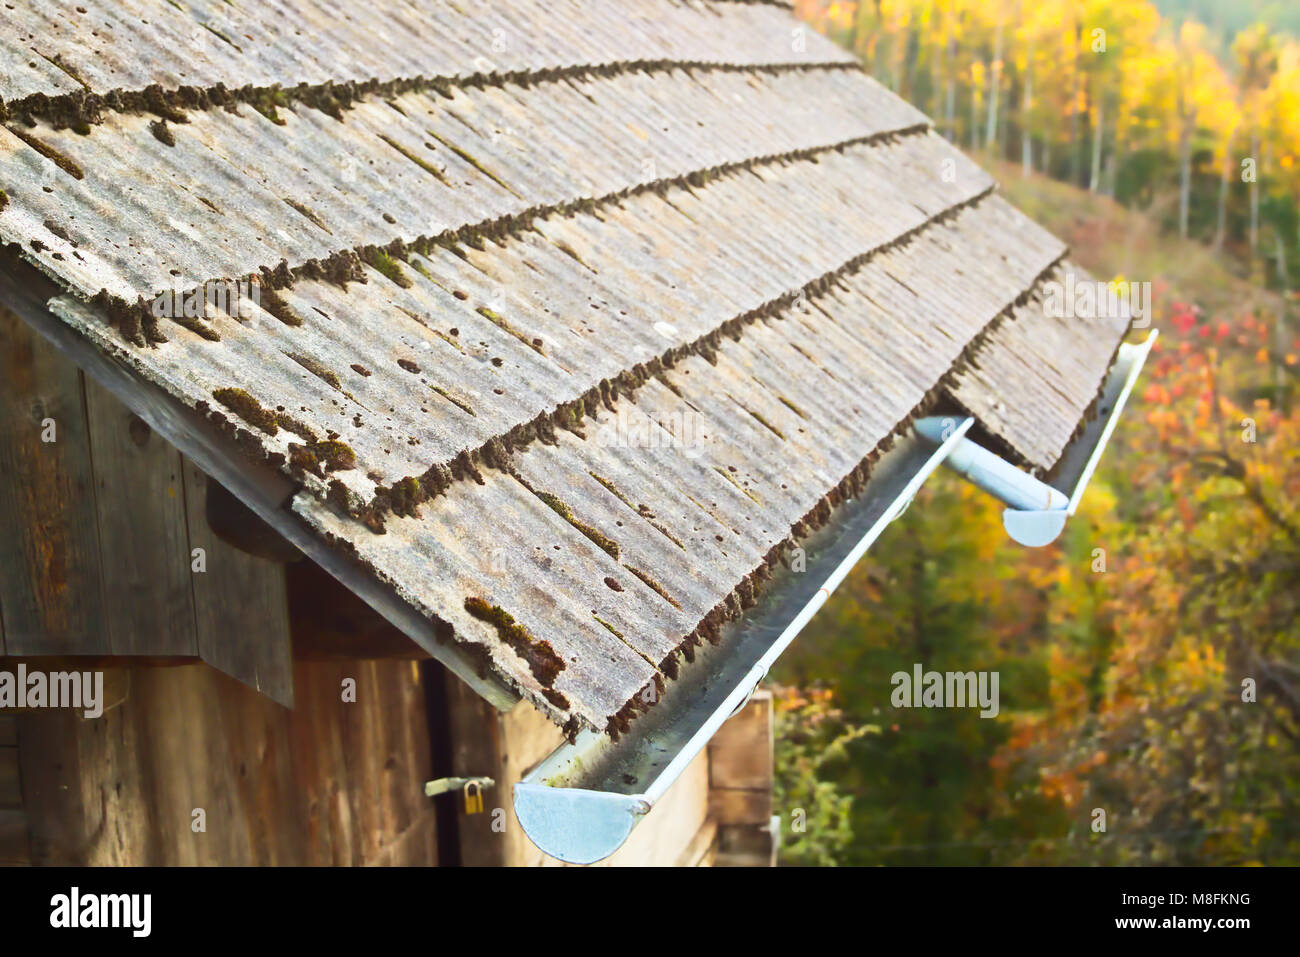 Asbestos Roofing Stock Photos Amp Asbestos Roofing Stock